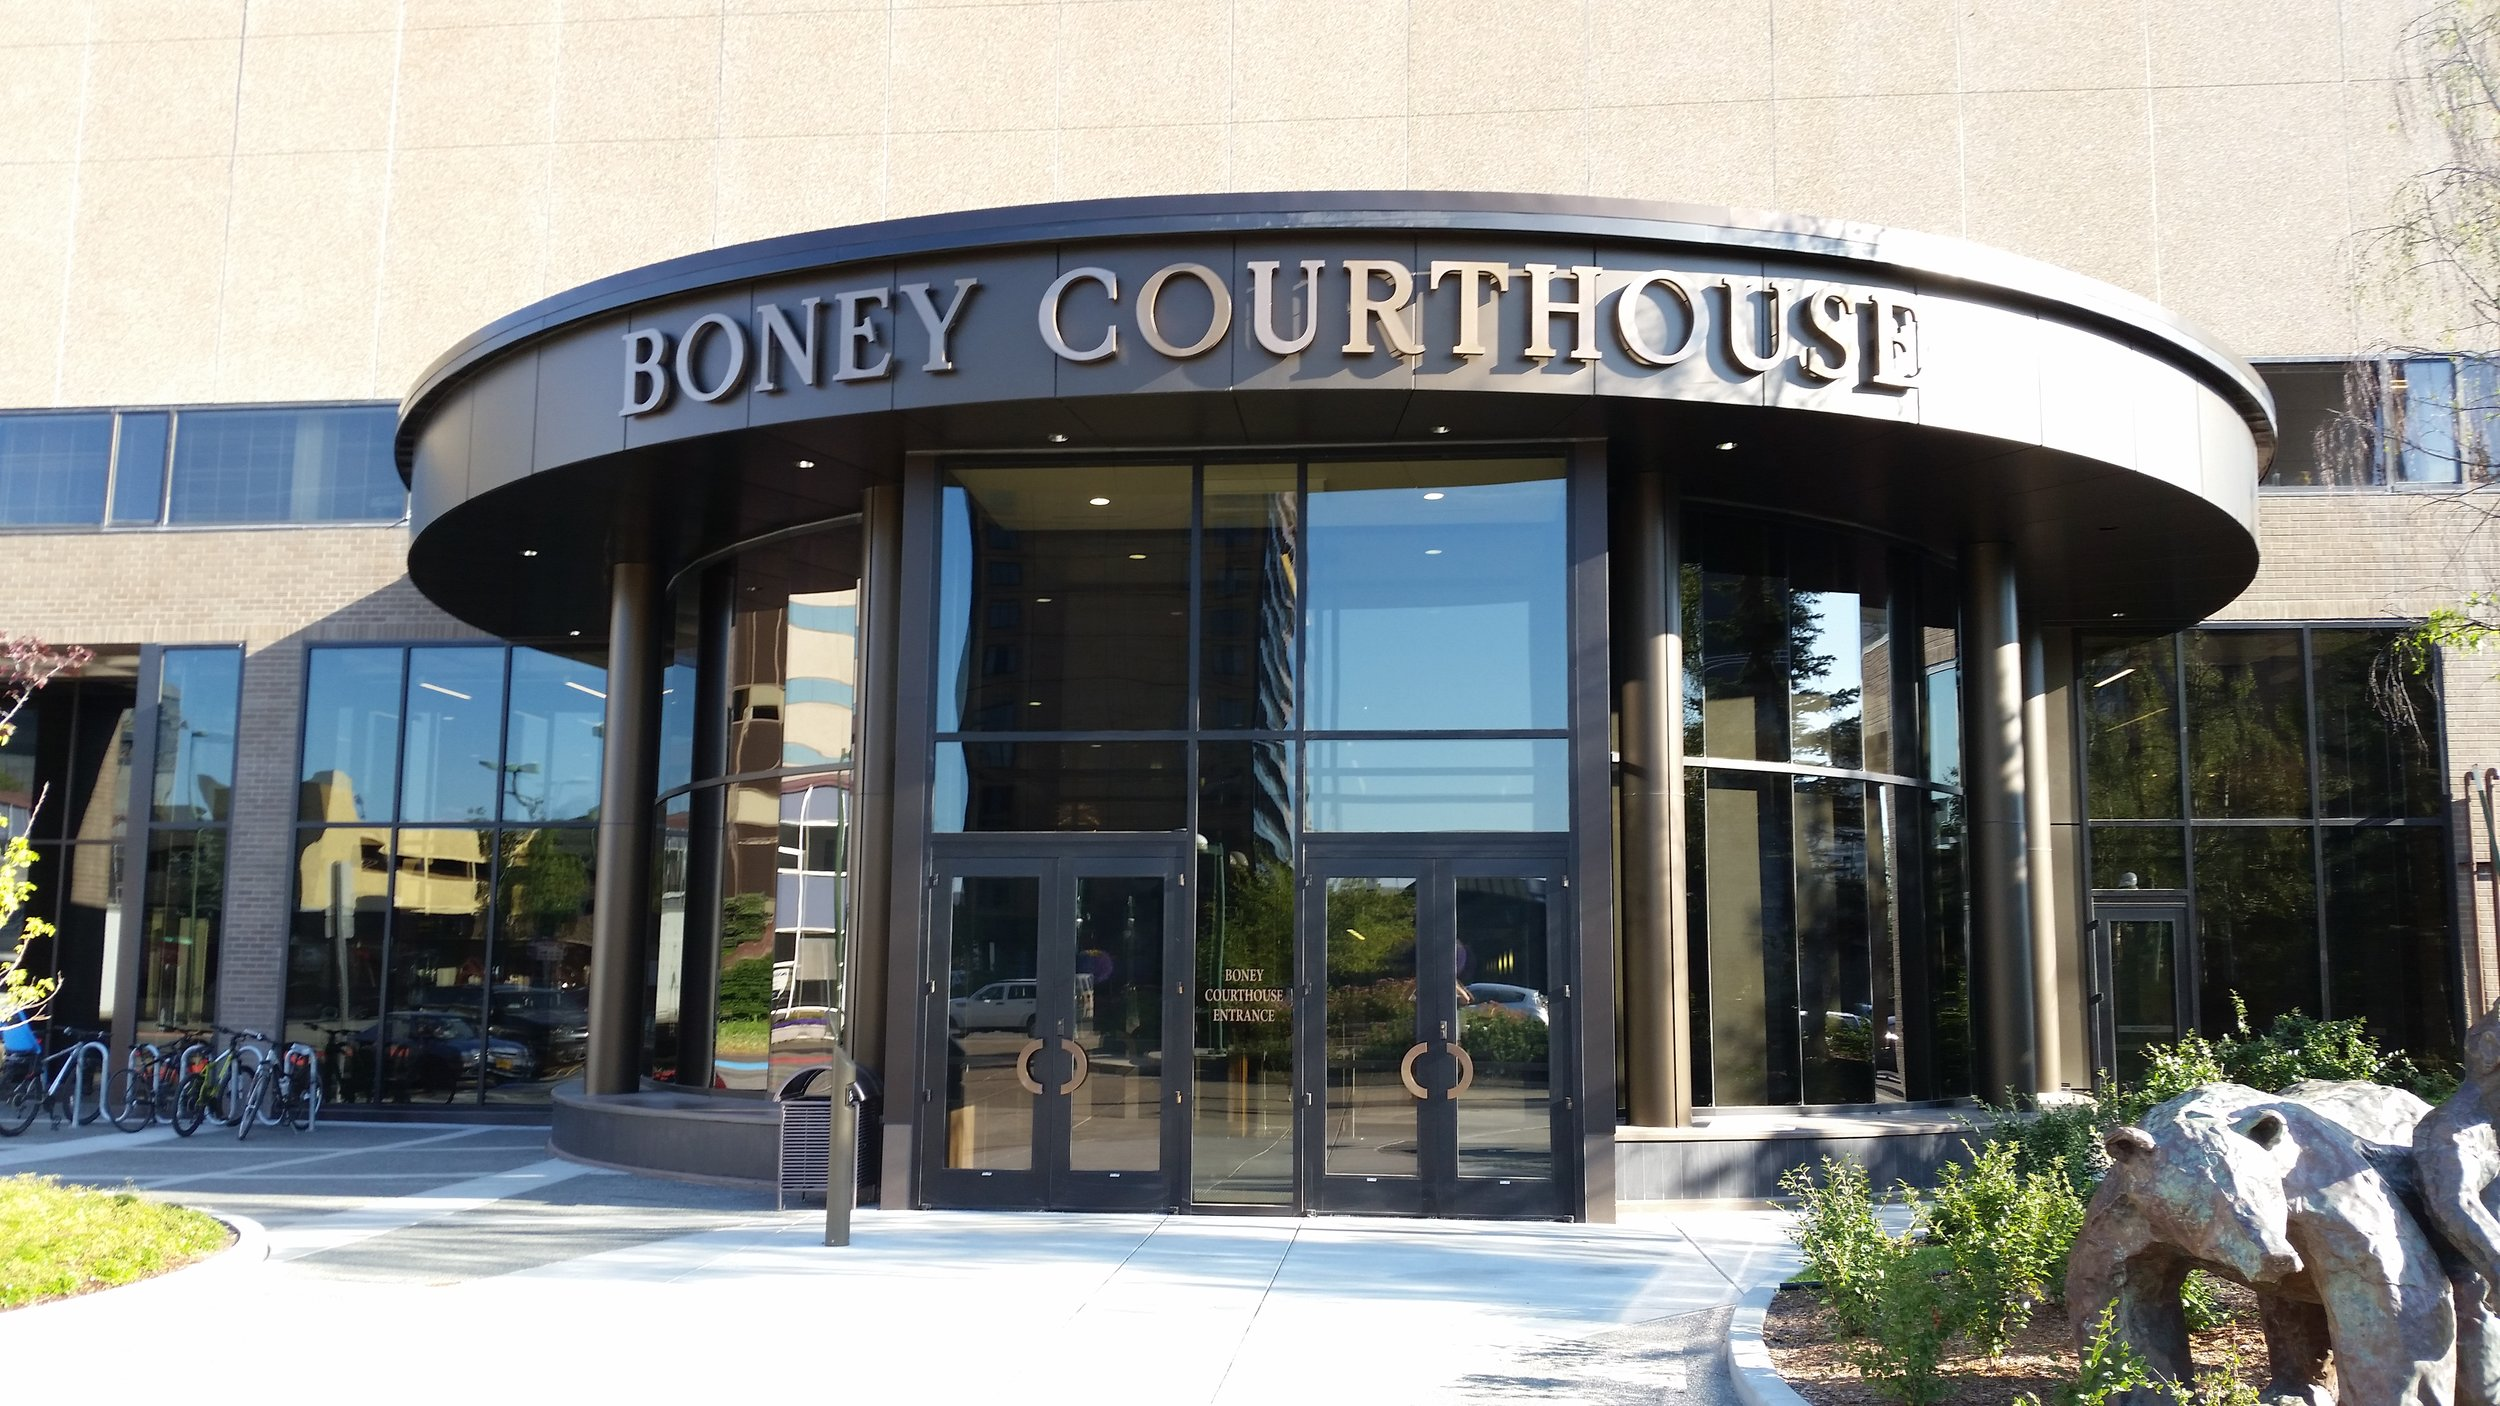 Boney Courthouse.jpg